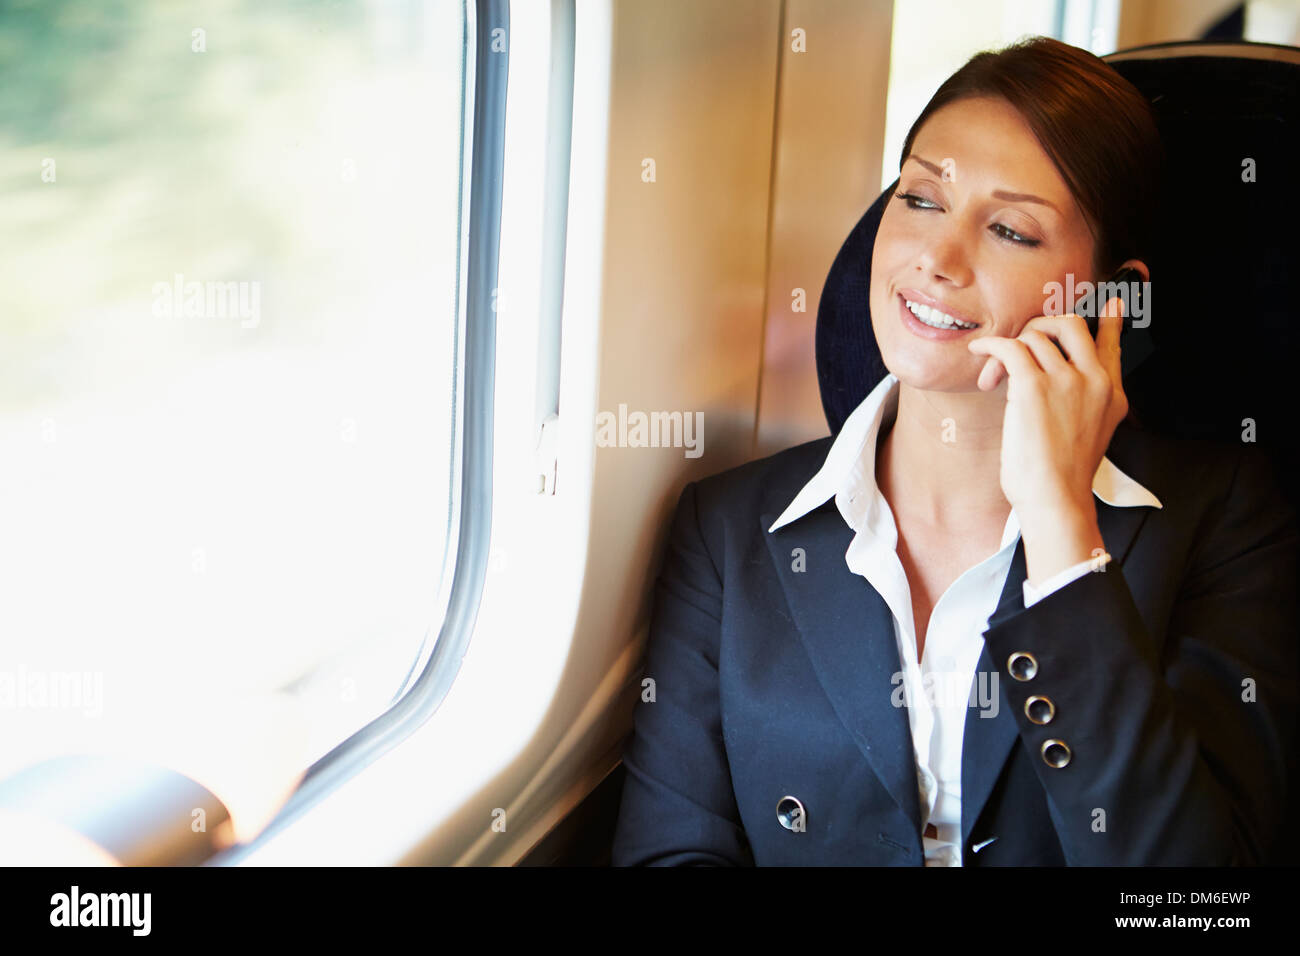 Businesswoman Commuting To Work On Train Using Mobile Phone - Stock Image